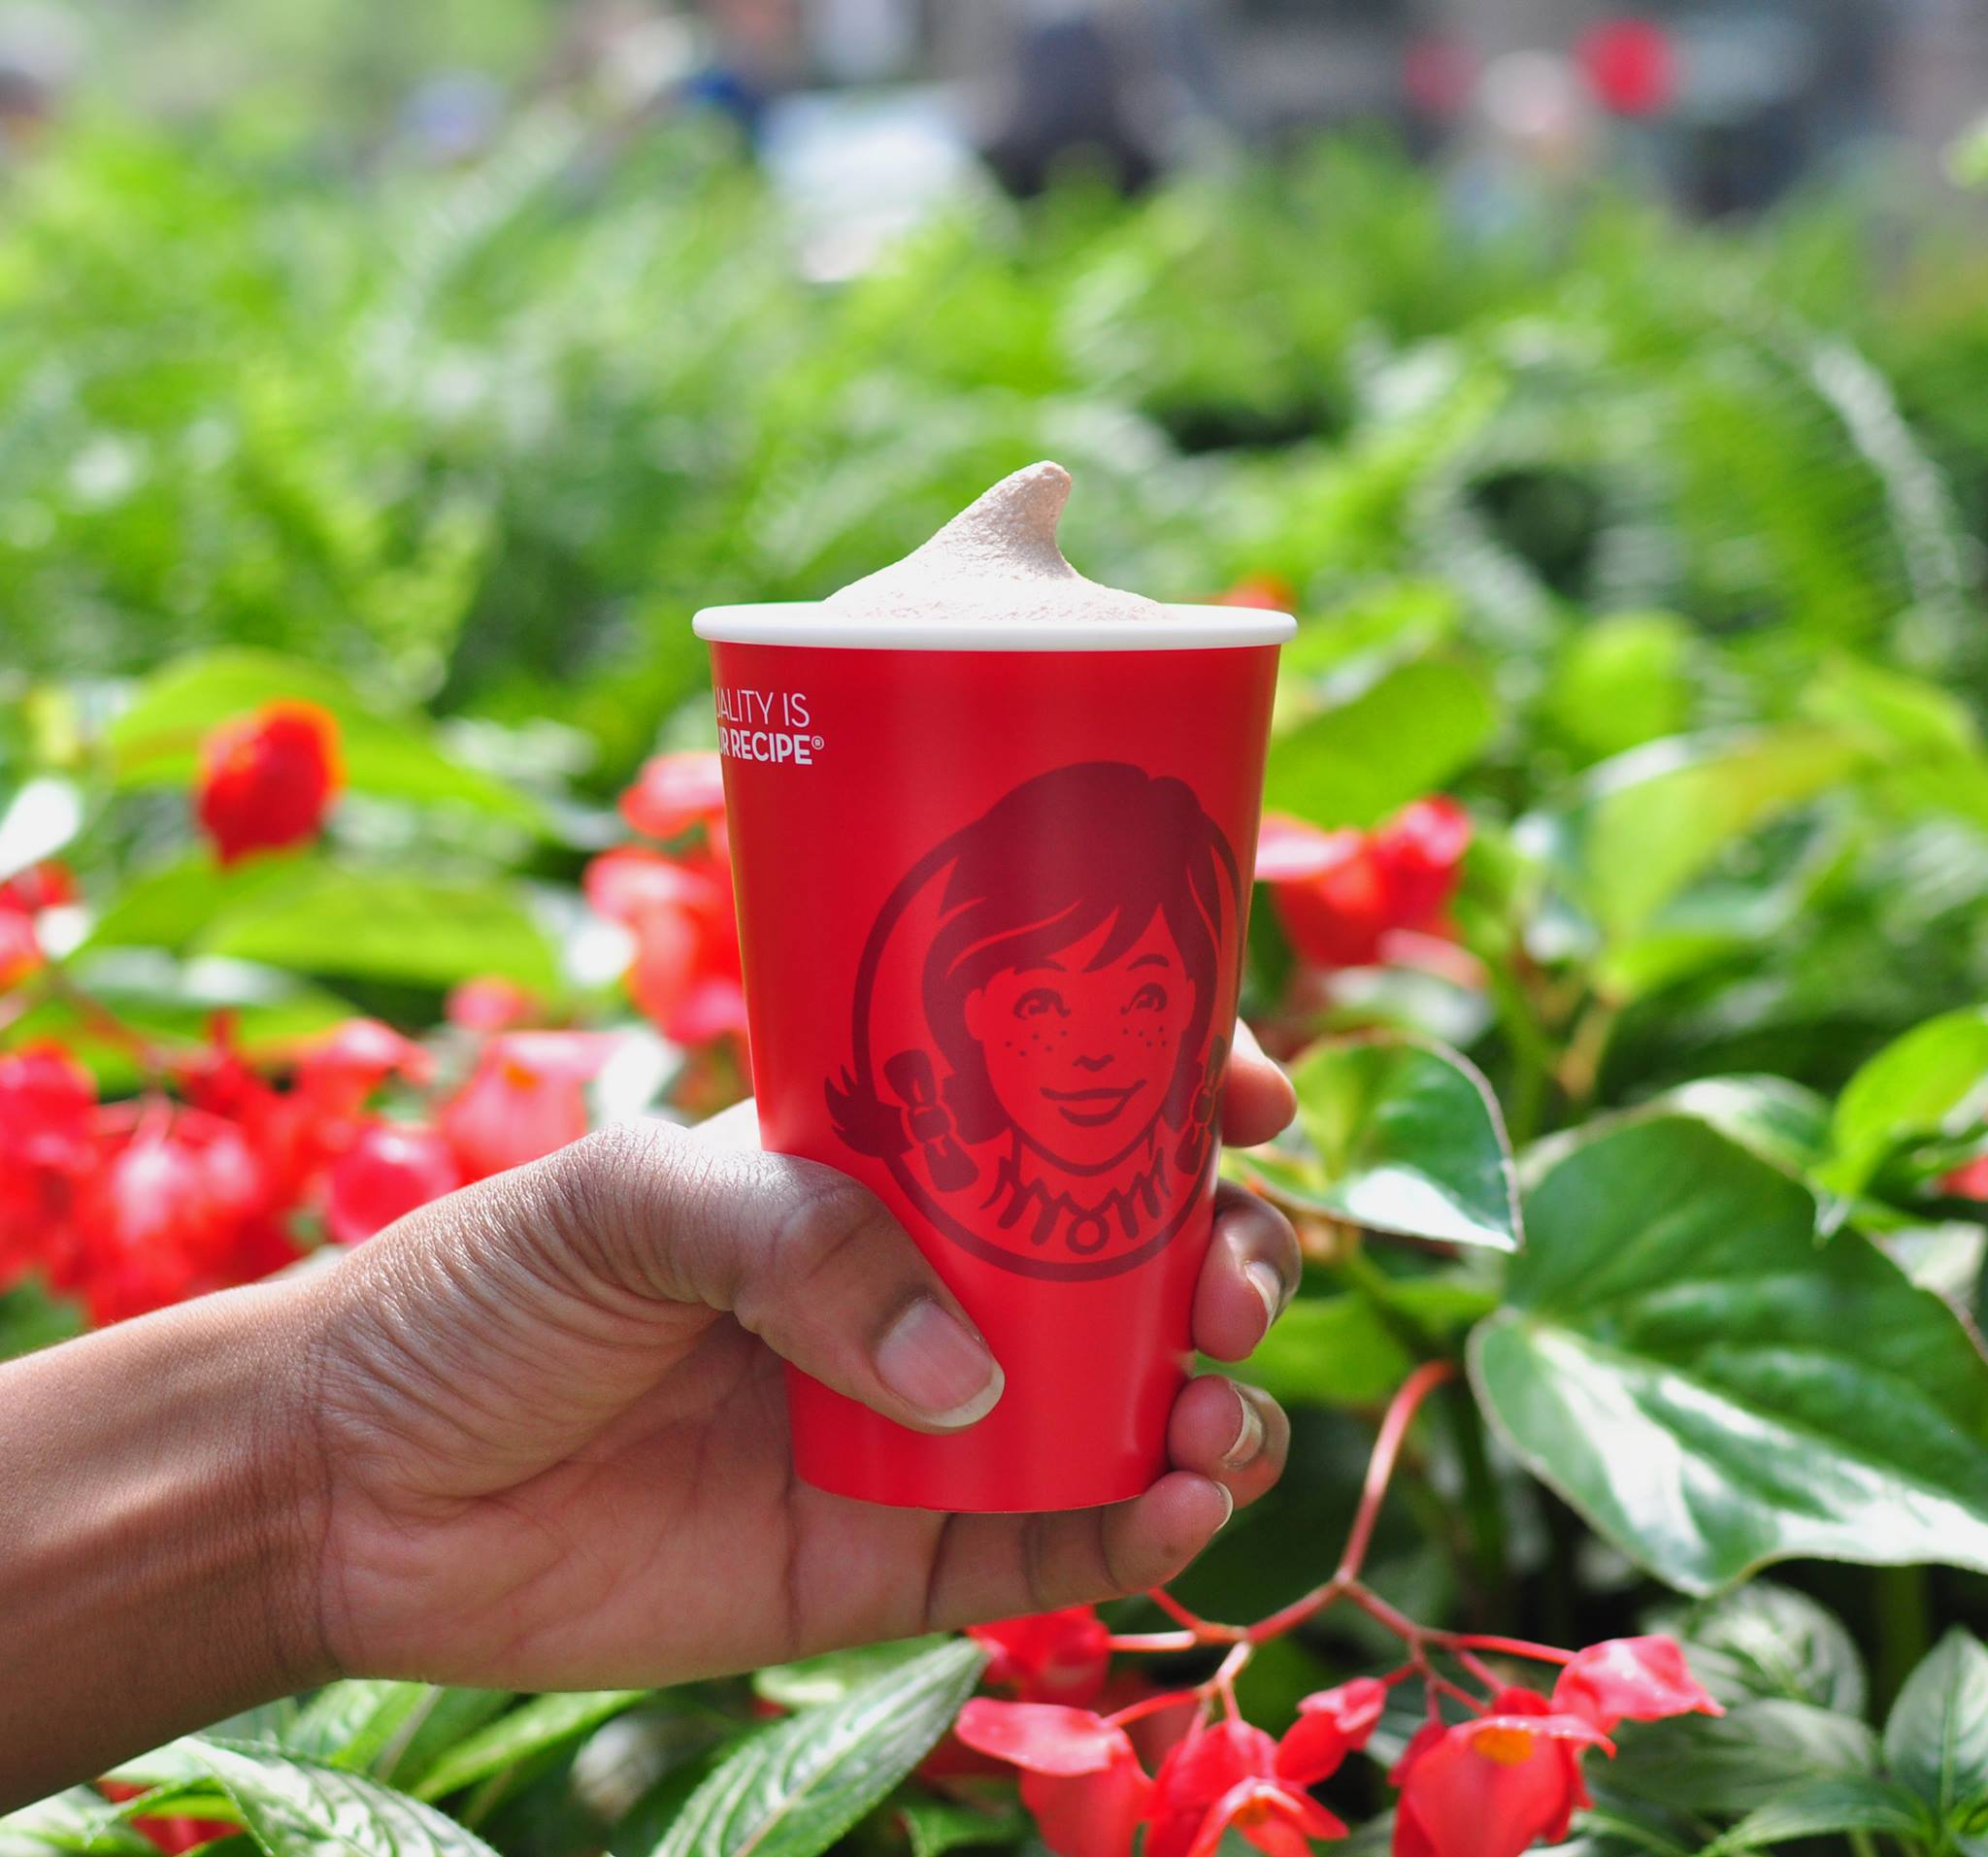 Heres A Cool Deal From Wendys Canada Right Now Small Frosty Is Just 99 So Grab Spoon Or Some Fries And Chill Out Remember